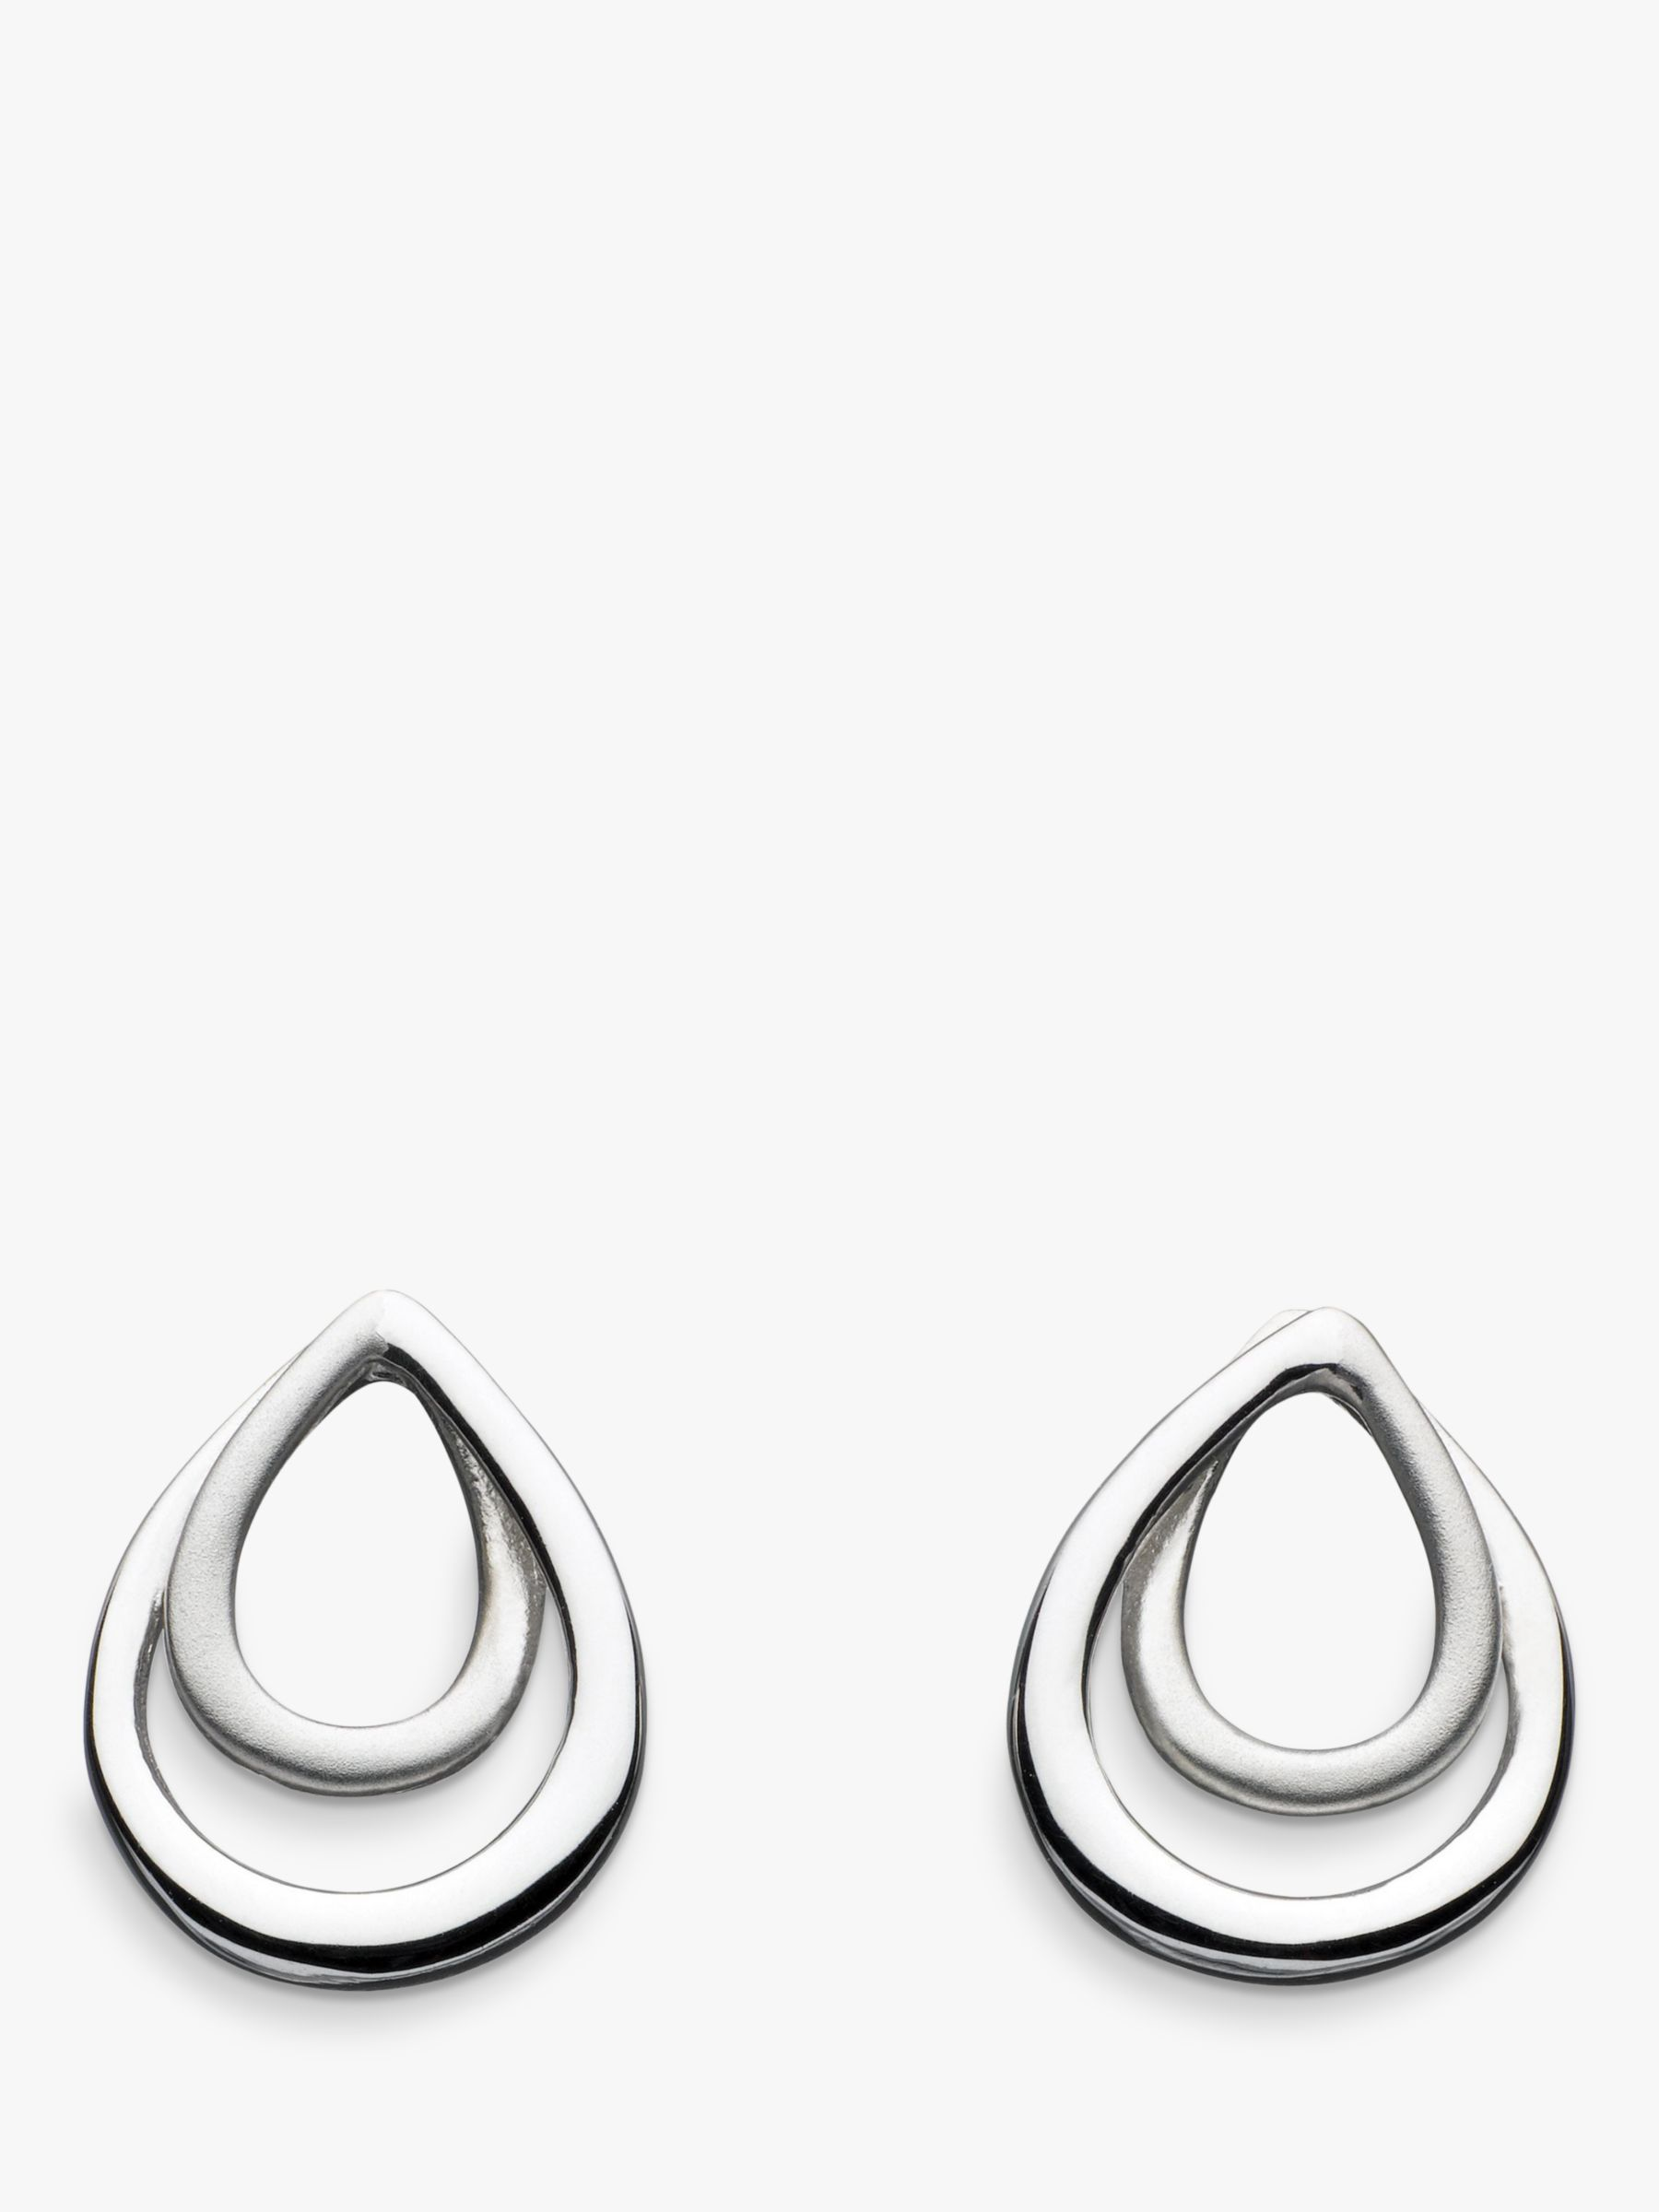 Kit Heath Kit Heath Sterling Silver Infinity Satin Stud Earrings